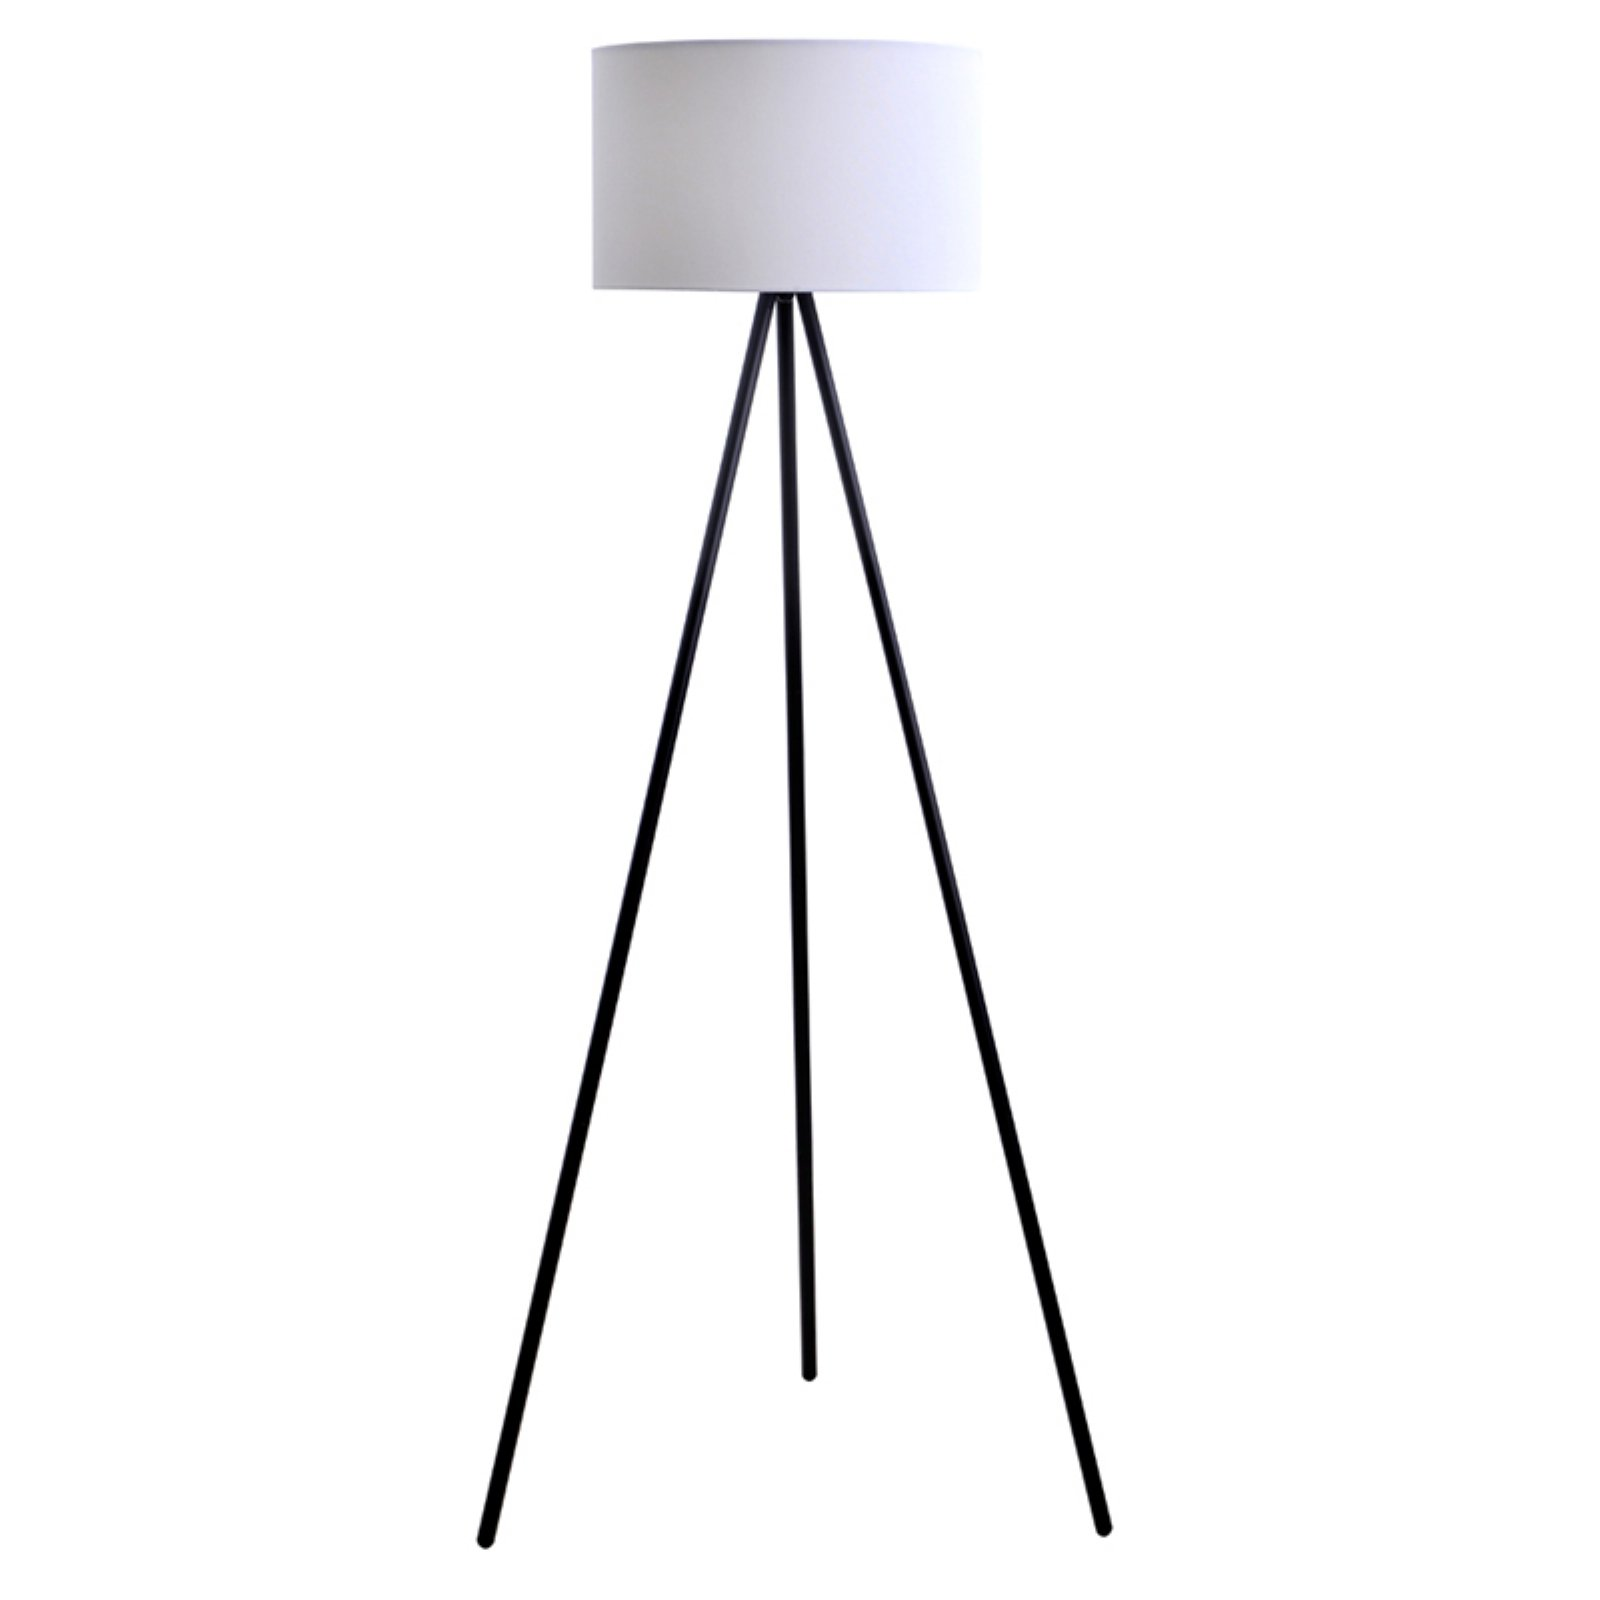 Click here to buy Catalina Lighting 3-Way Black Tripod Floor Lamp by Evolution Lighting LLC.